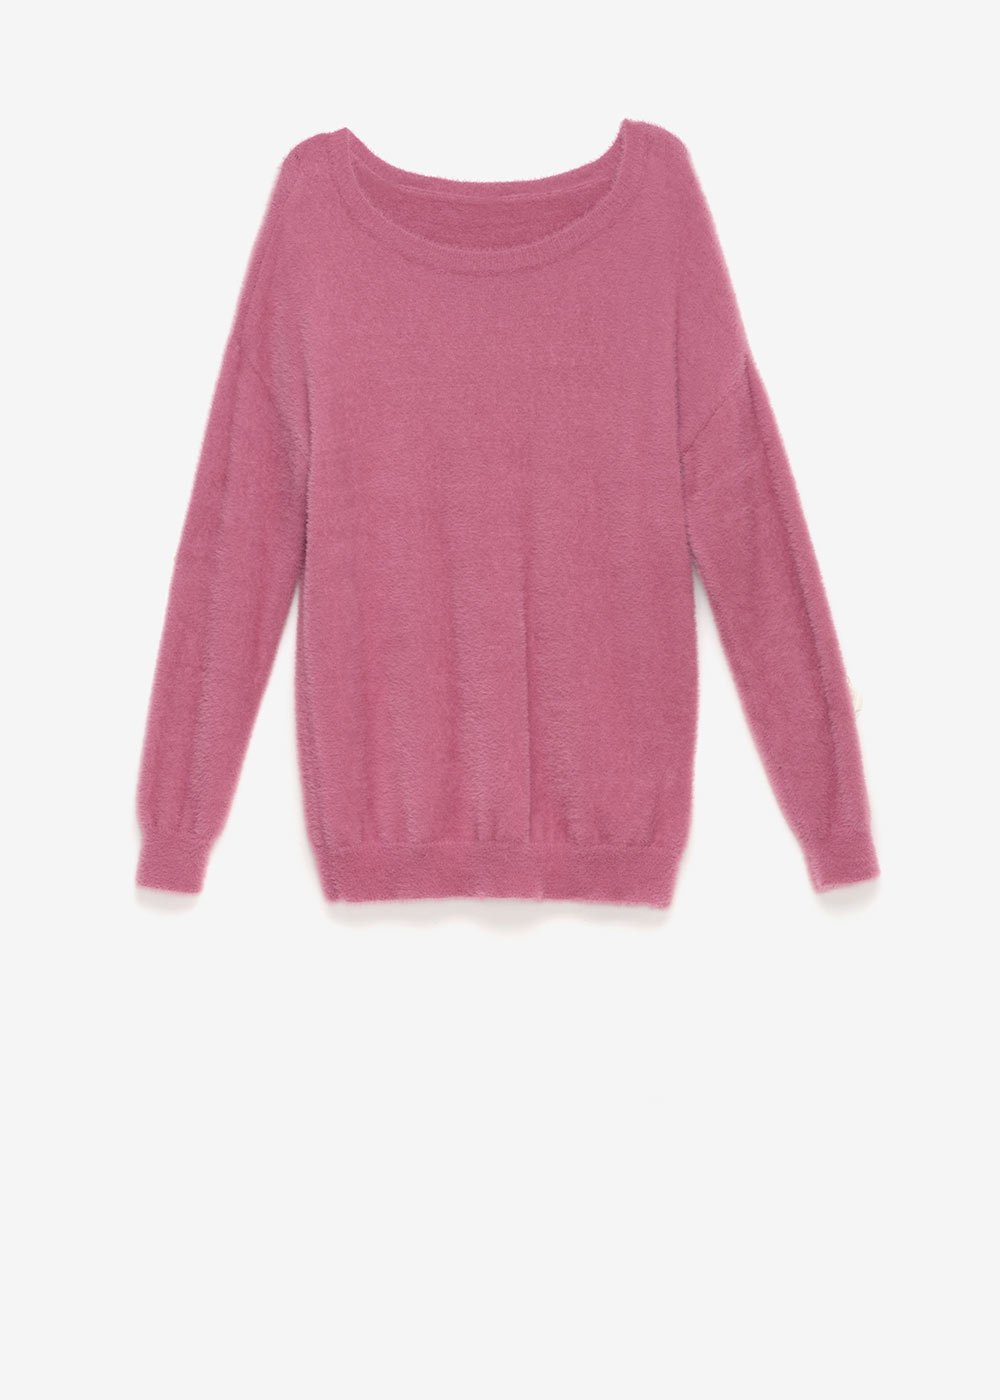 Micael fur-effect sweater - Cammeo - Woman